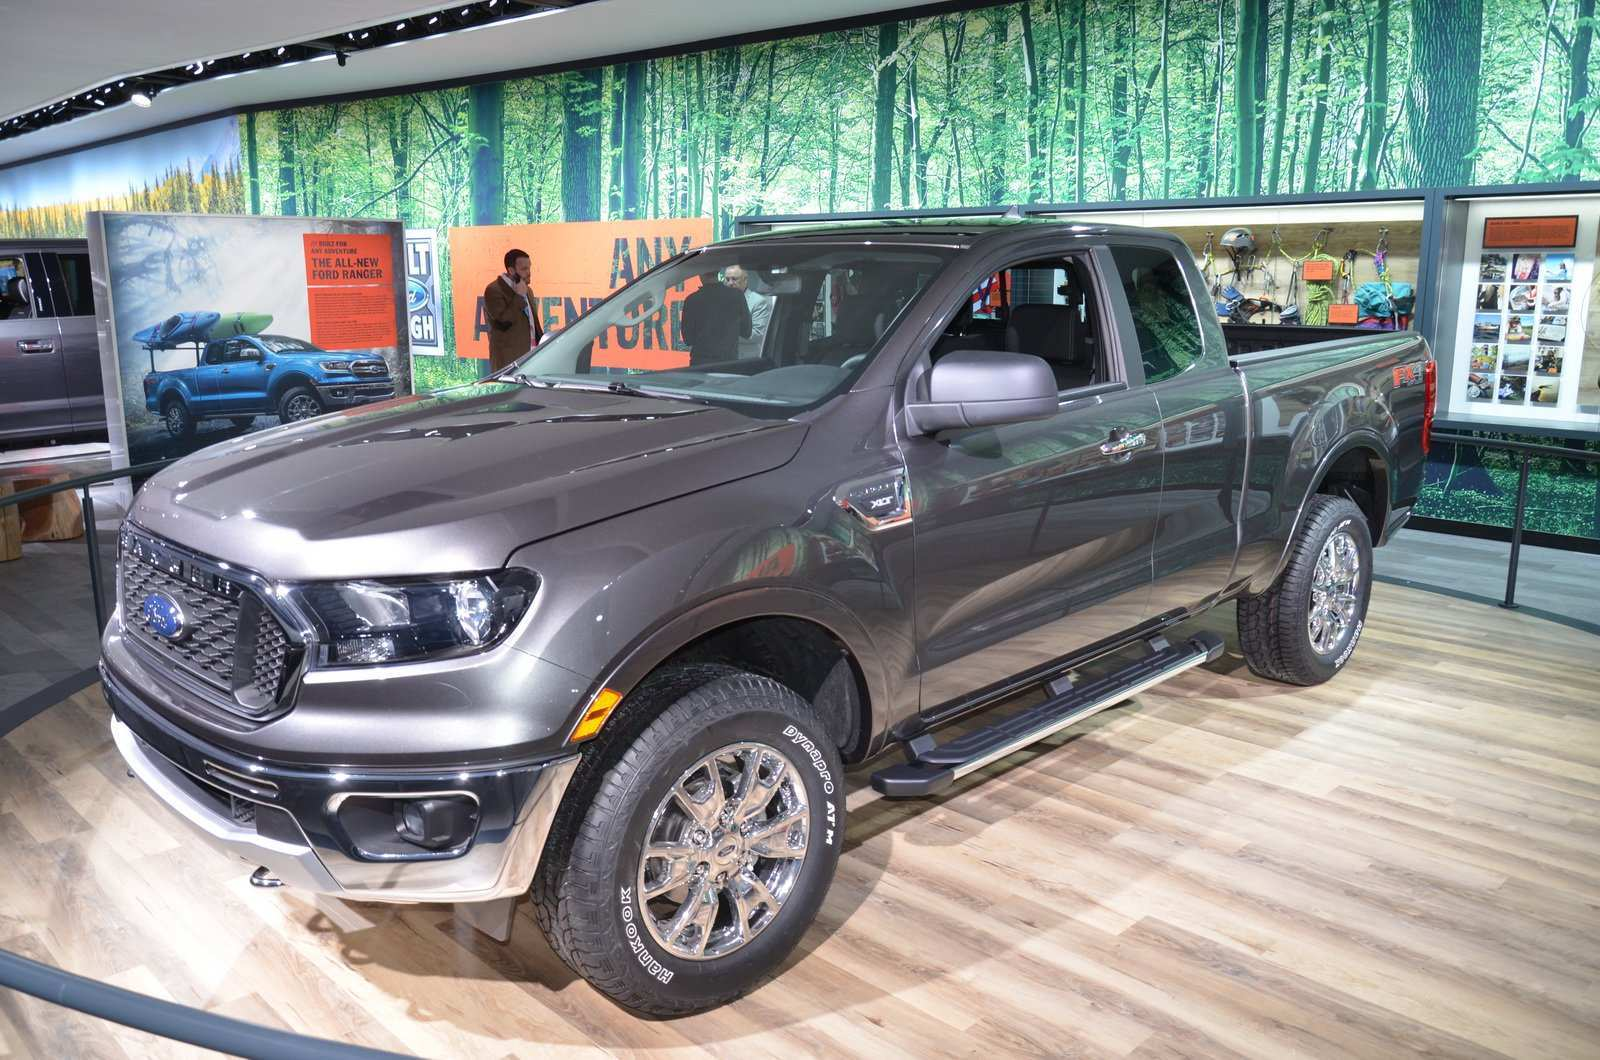 63 A 2019 2 Door Ford Ranger New Review